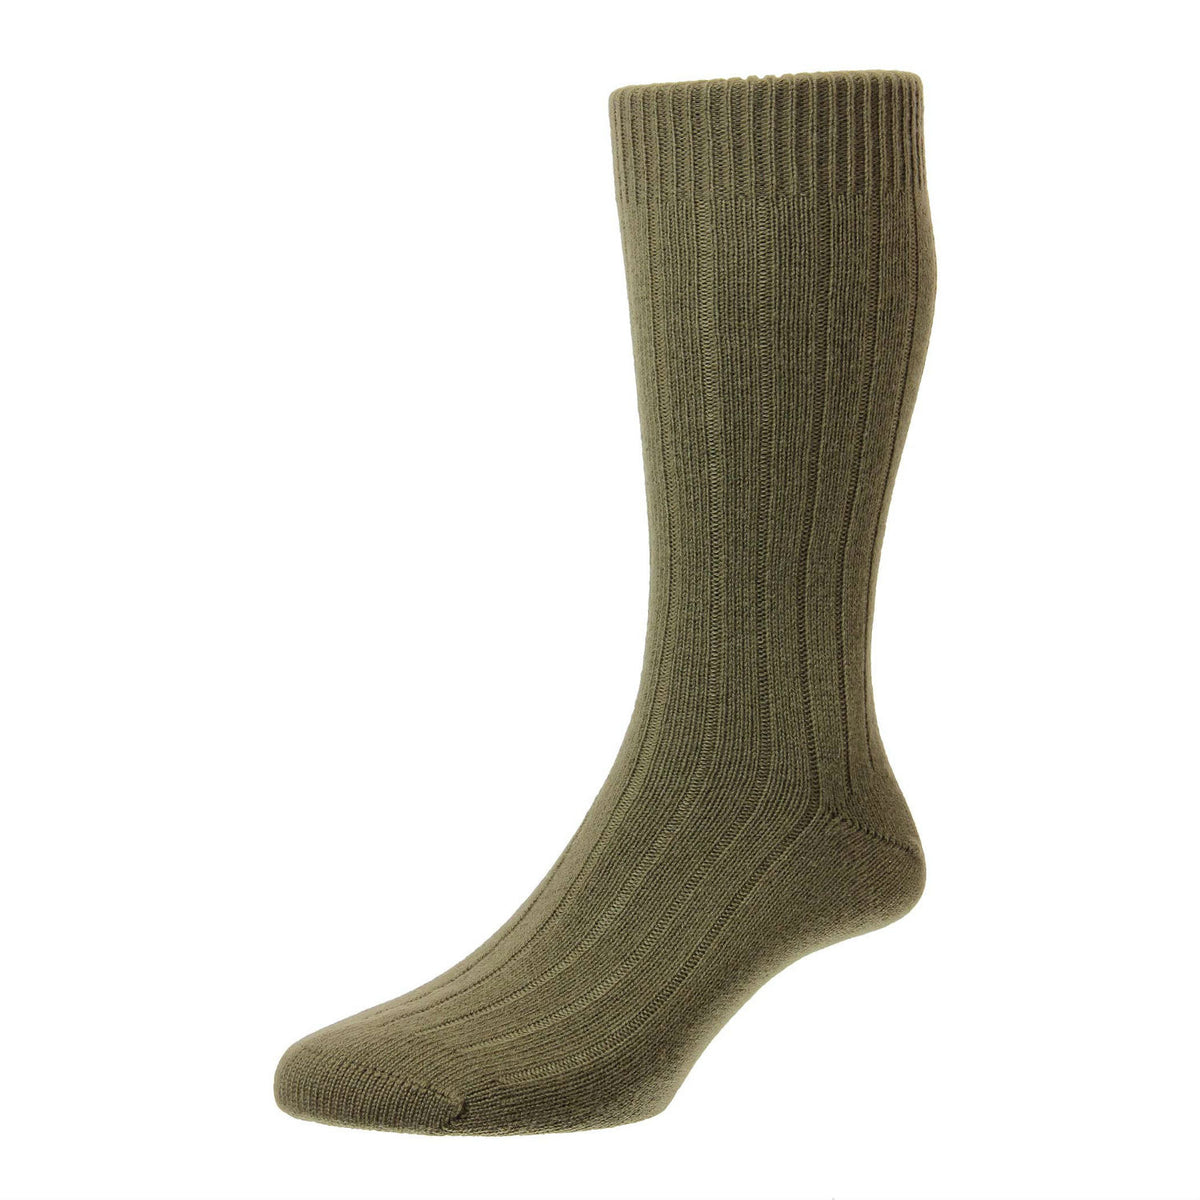 Light Olive Green | Mens Cashmere Socks | Made in England | Calf Length Sock | buy now at The Cashmere Choice London